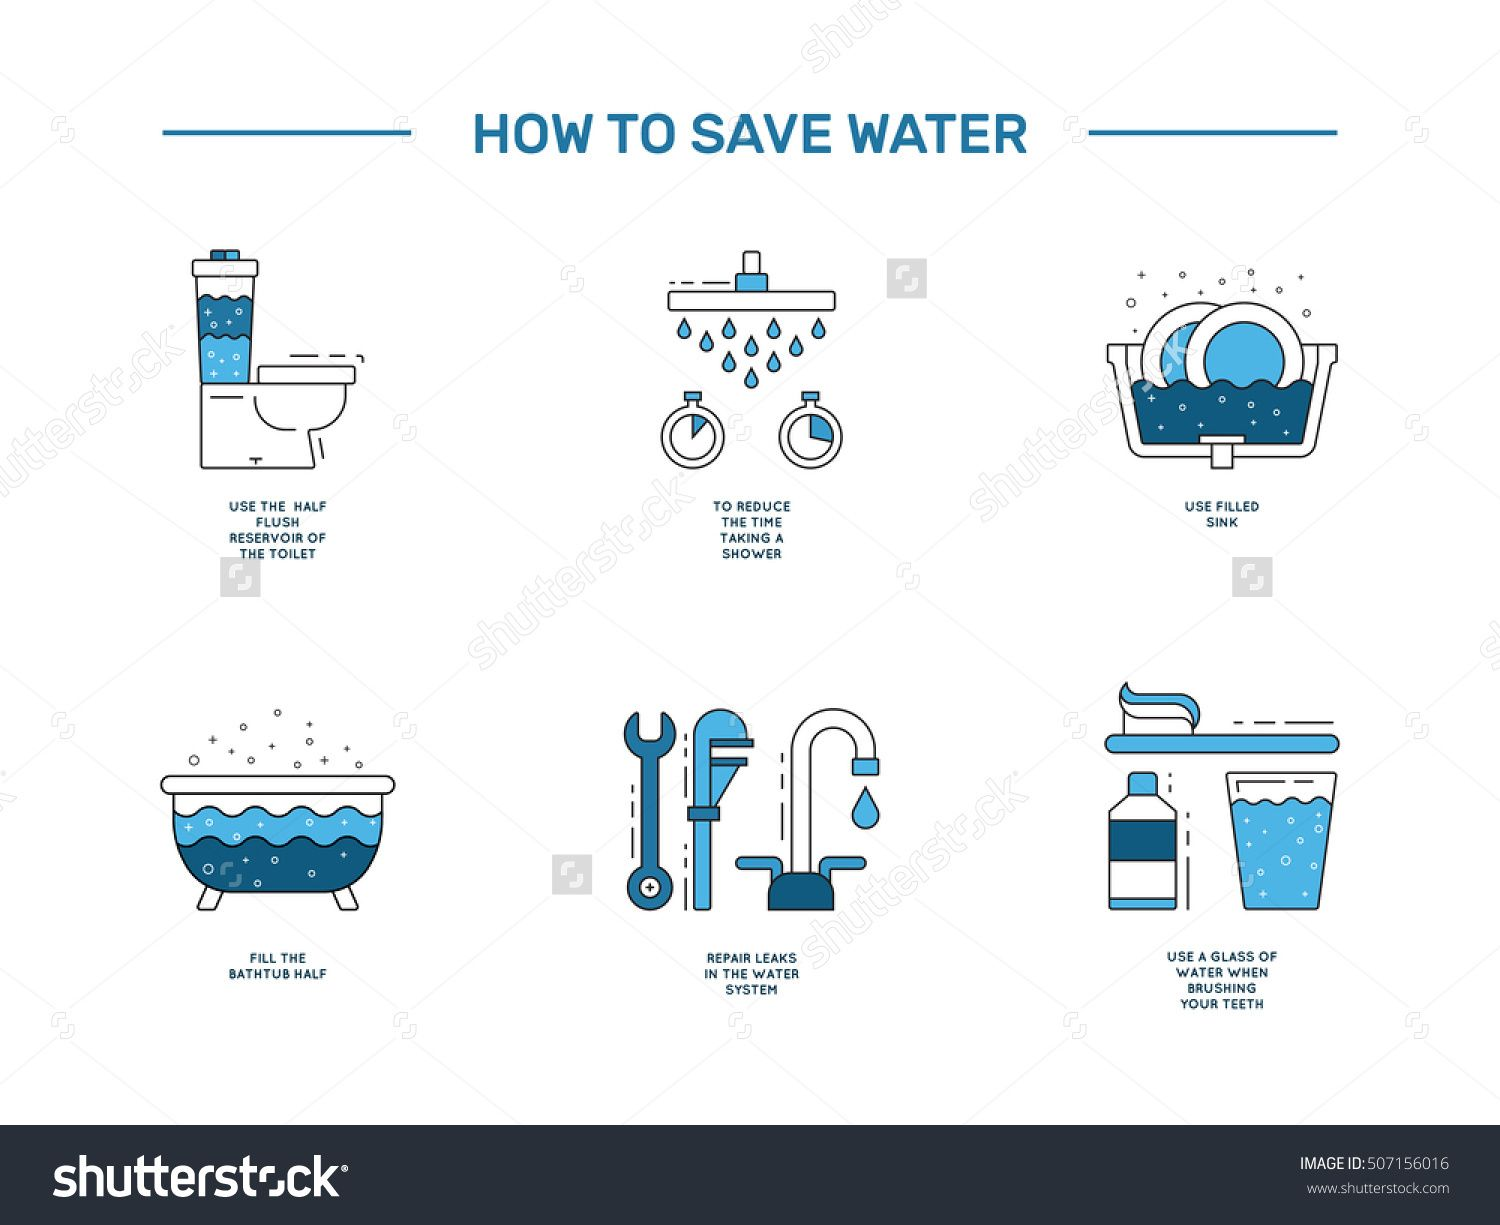 small resolution of illustration with tips on saving water consumption by man in a house to reduce financial costs and reduce the amount of accounts with water consumption